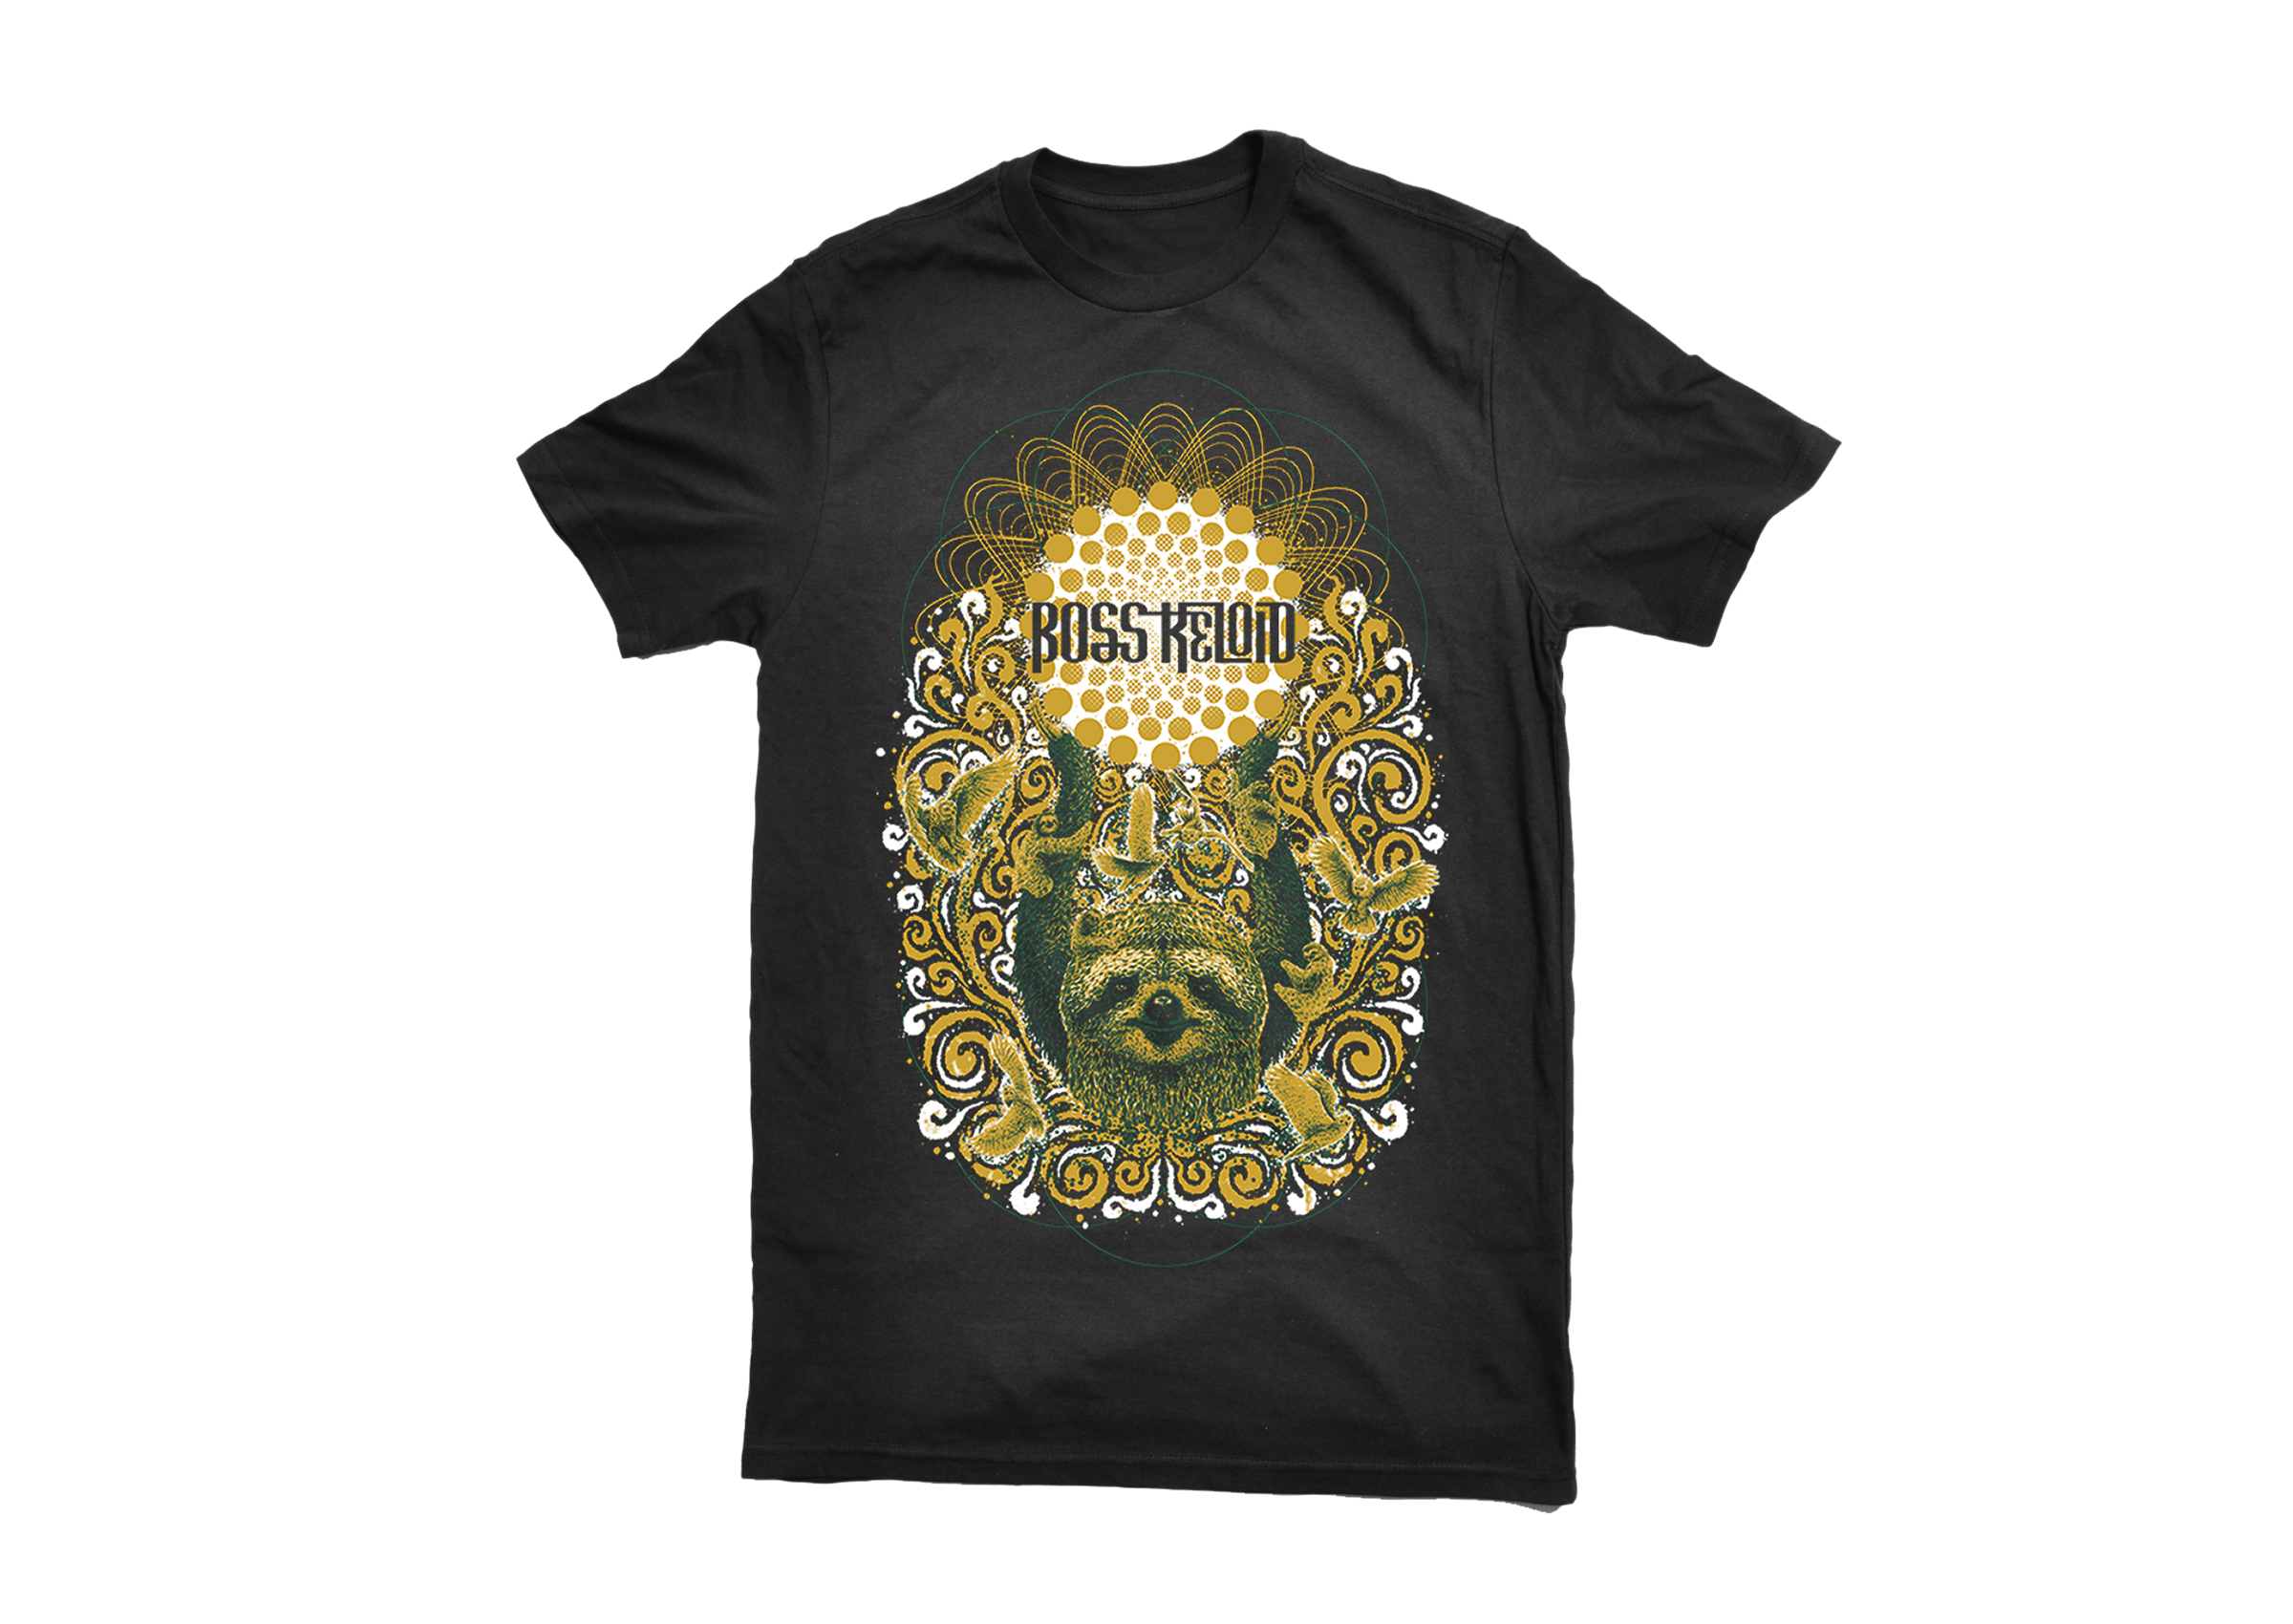 Boss Keloid - Herb Your Enthusiasm shirt